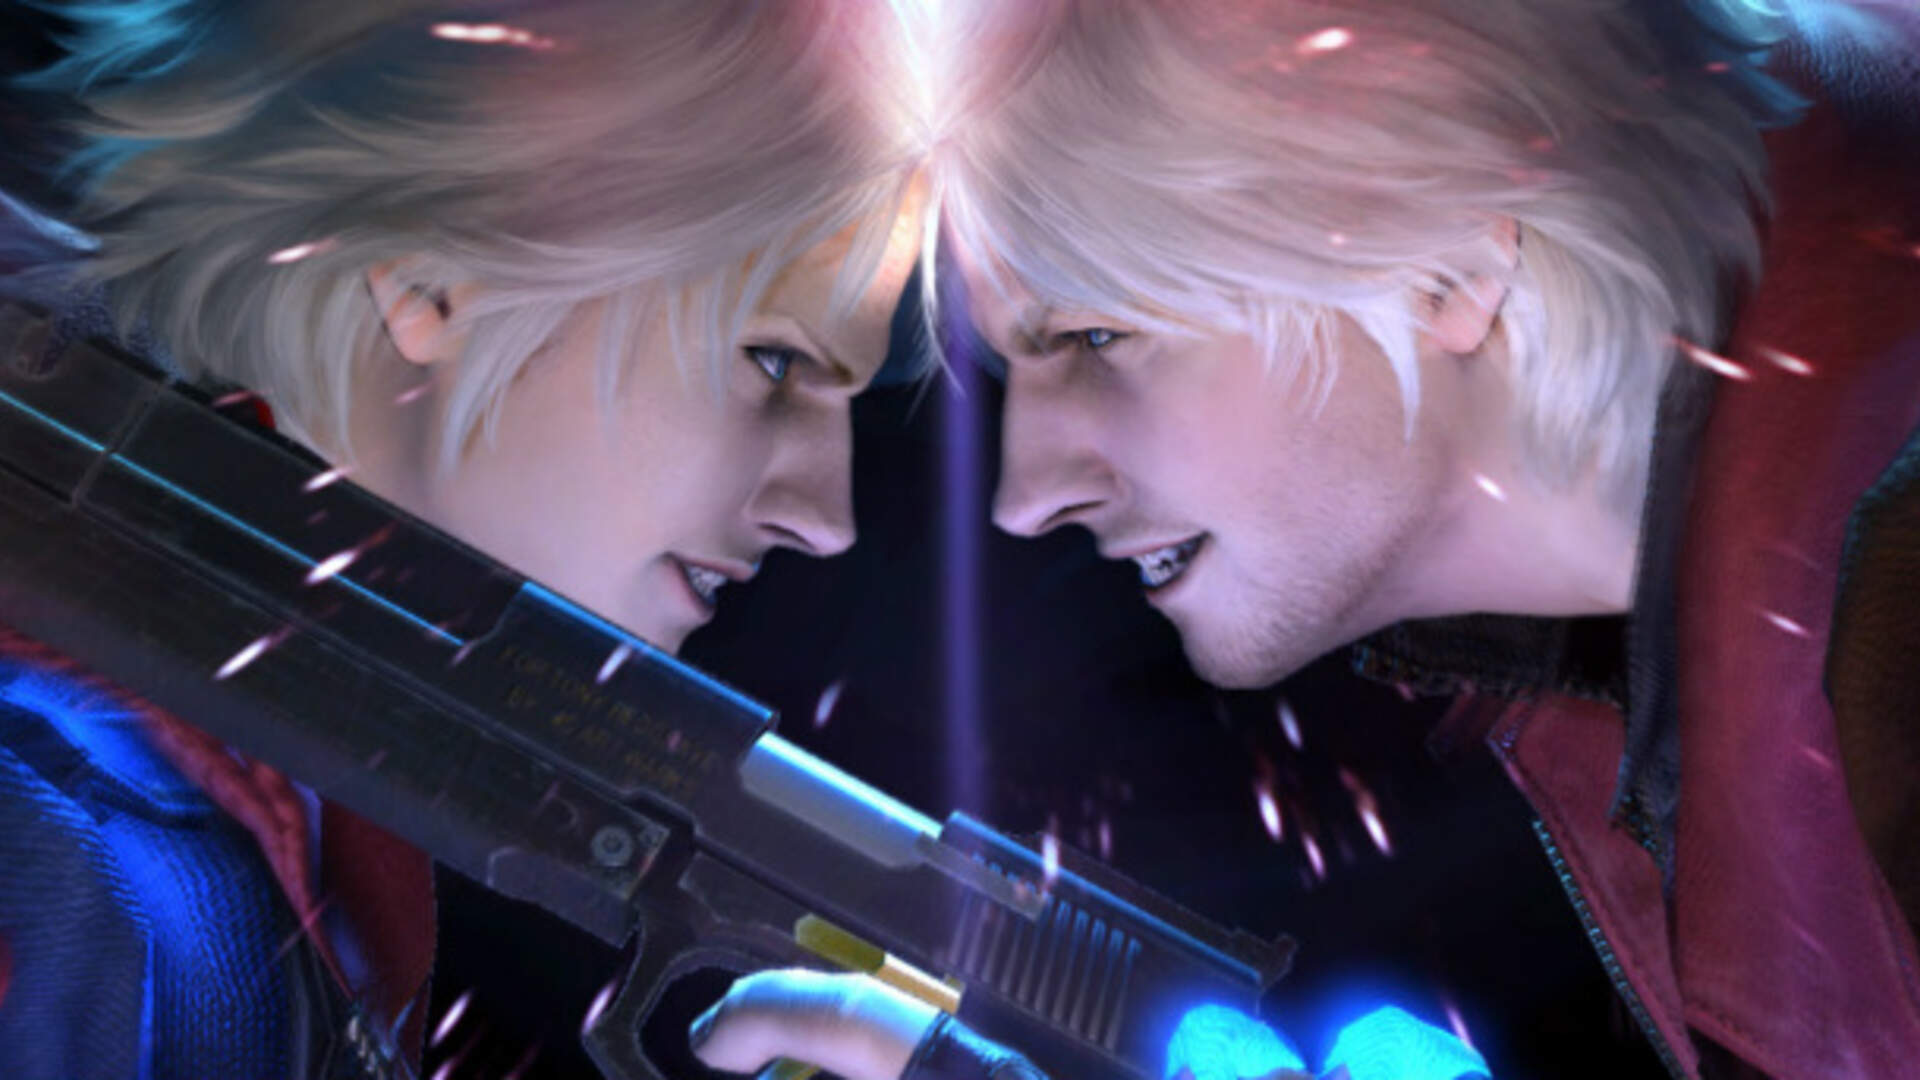 Devil May Cry 5 Domain Registered by Capcom